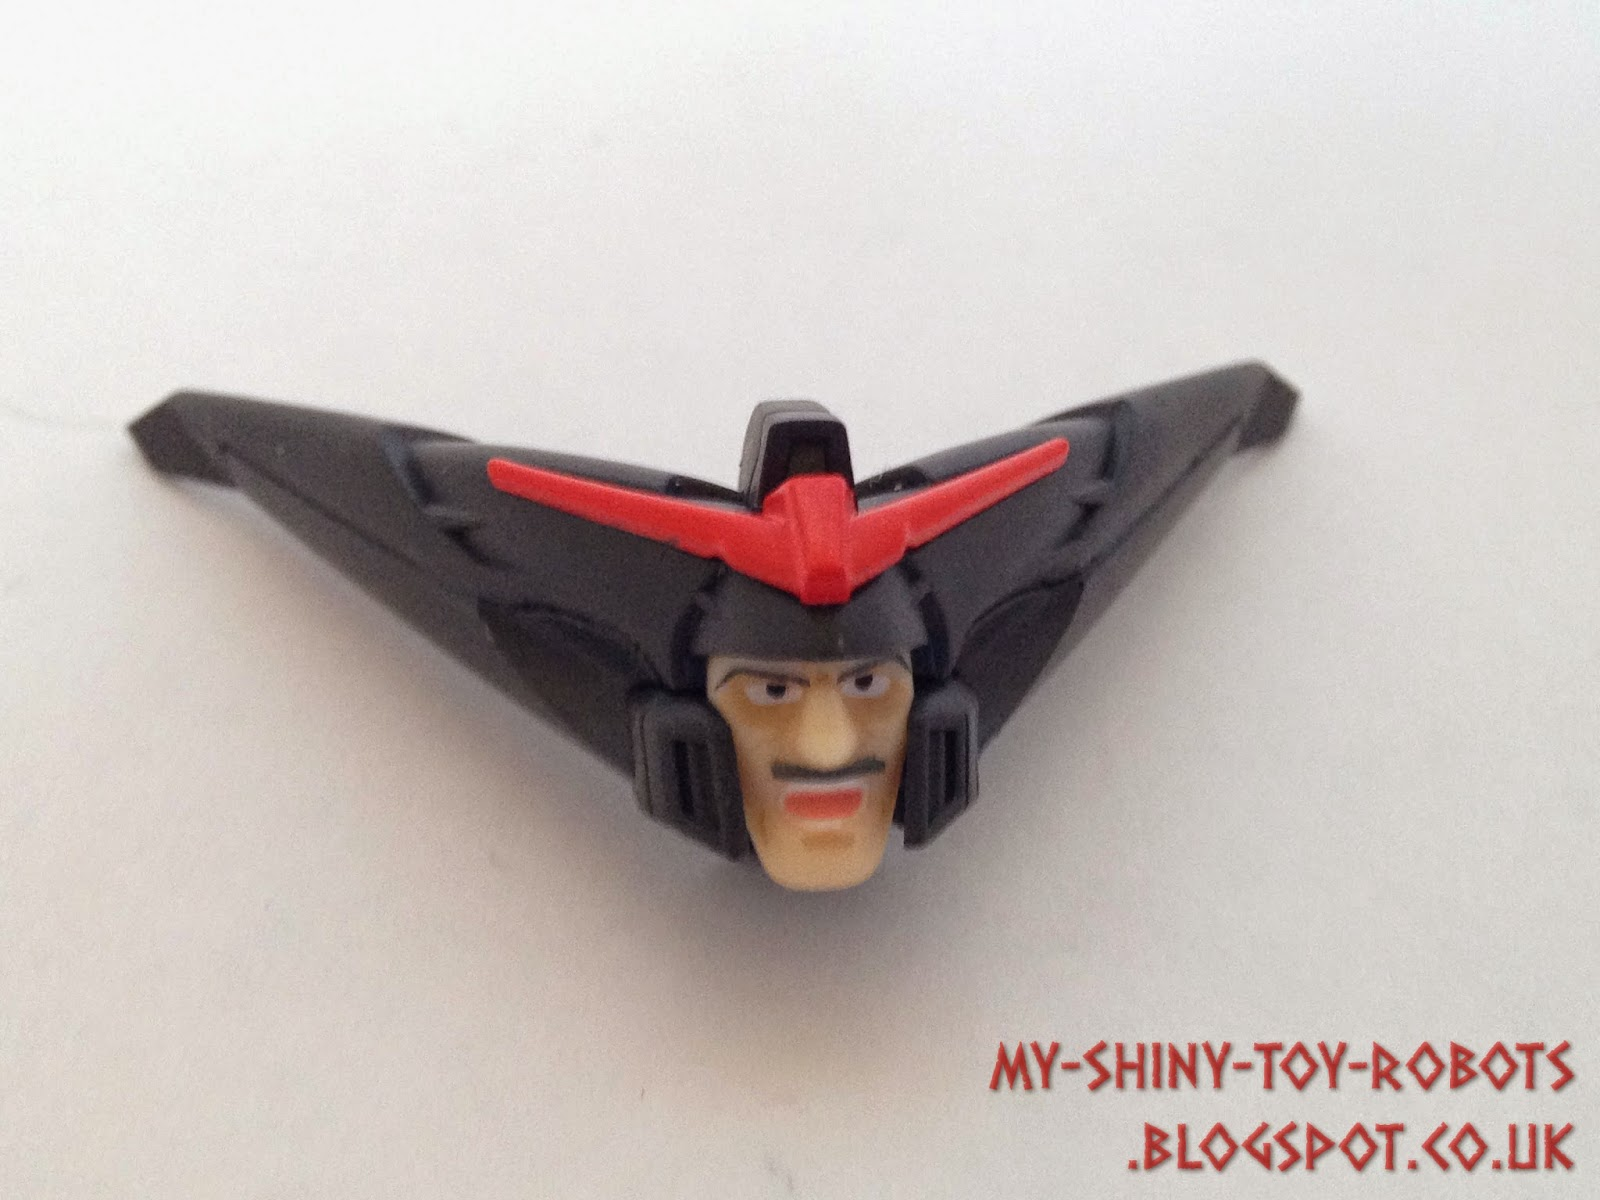 The bonus Robot Damashii head